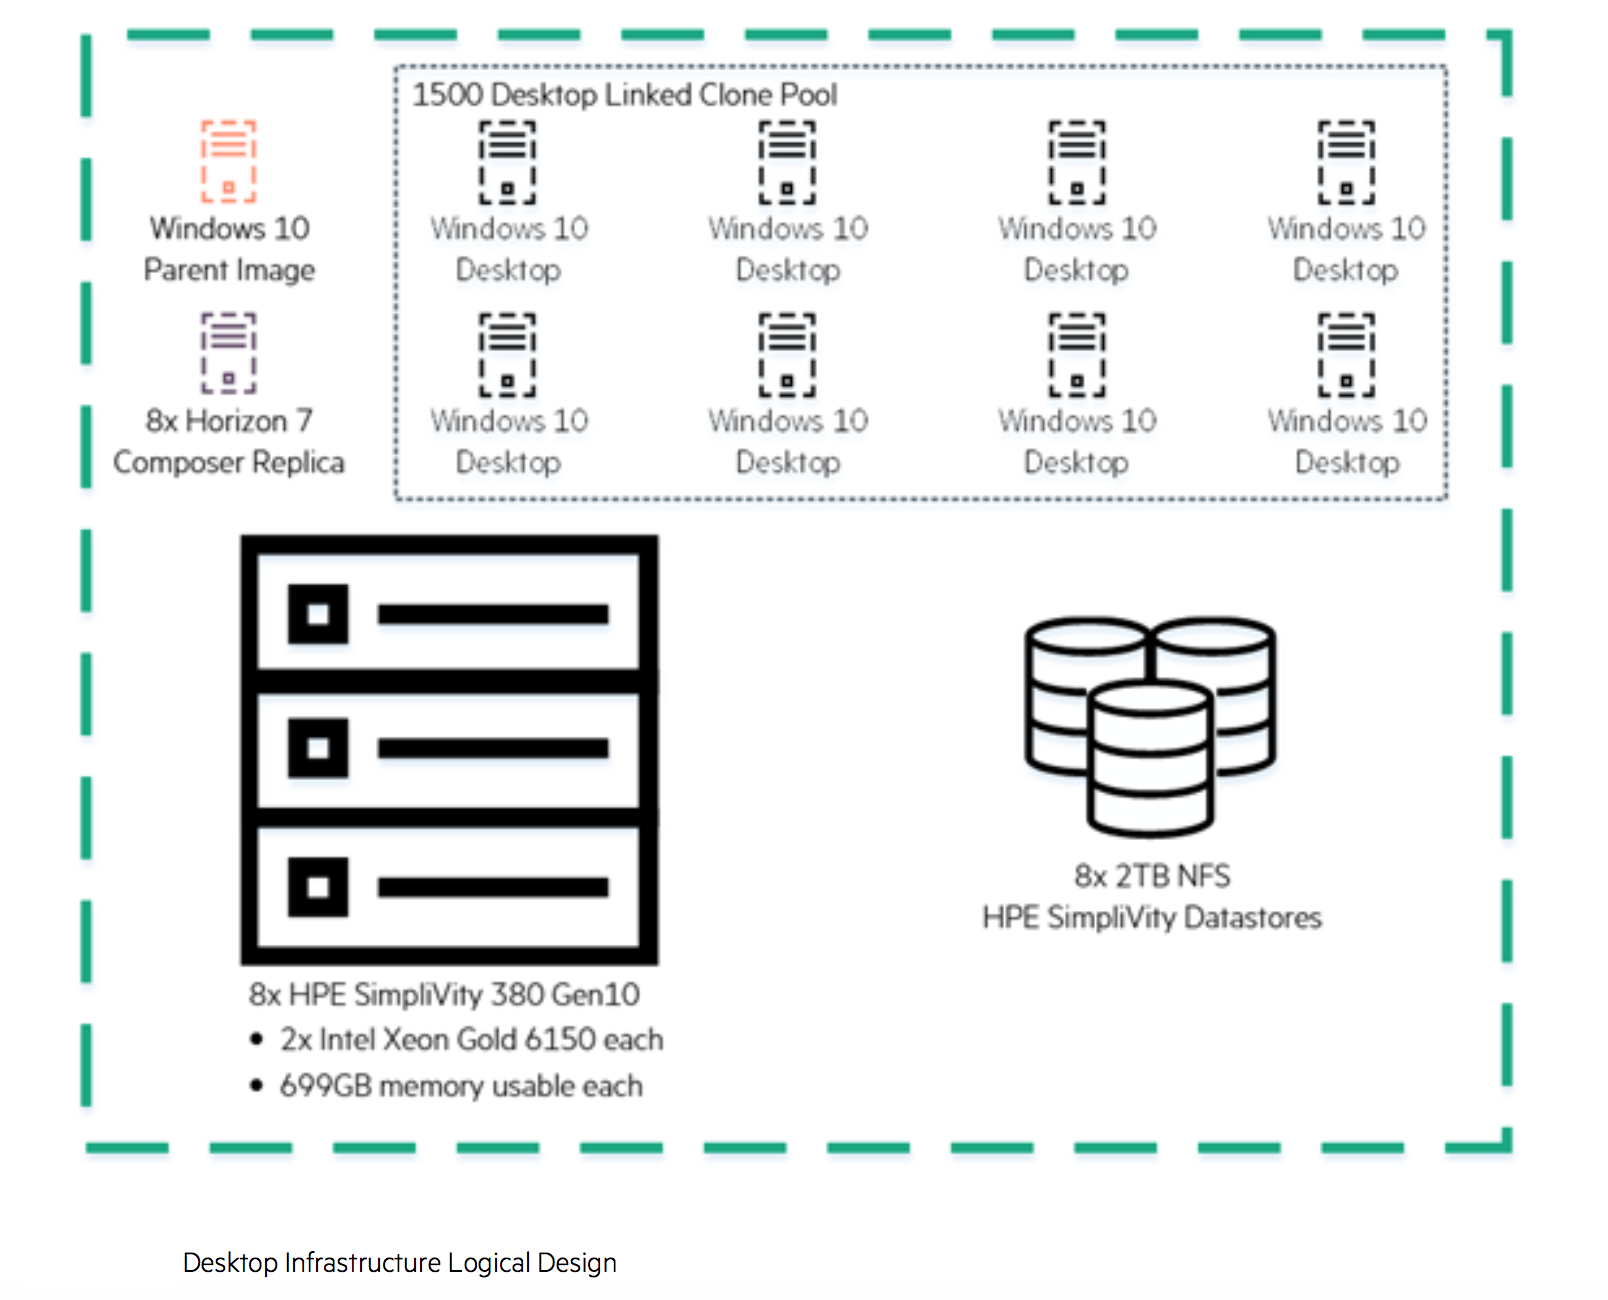 HPE Reference Architecture for VMware Horizon on HPE SimpliVity 380